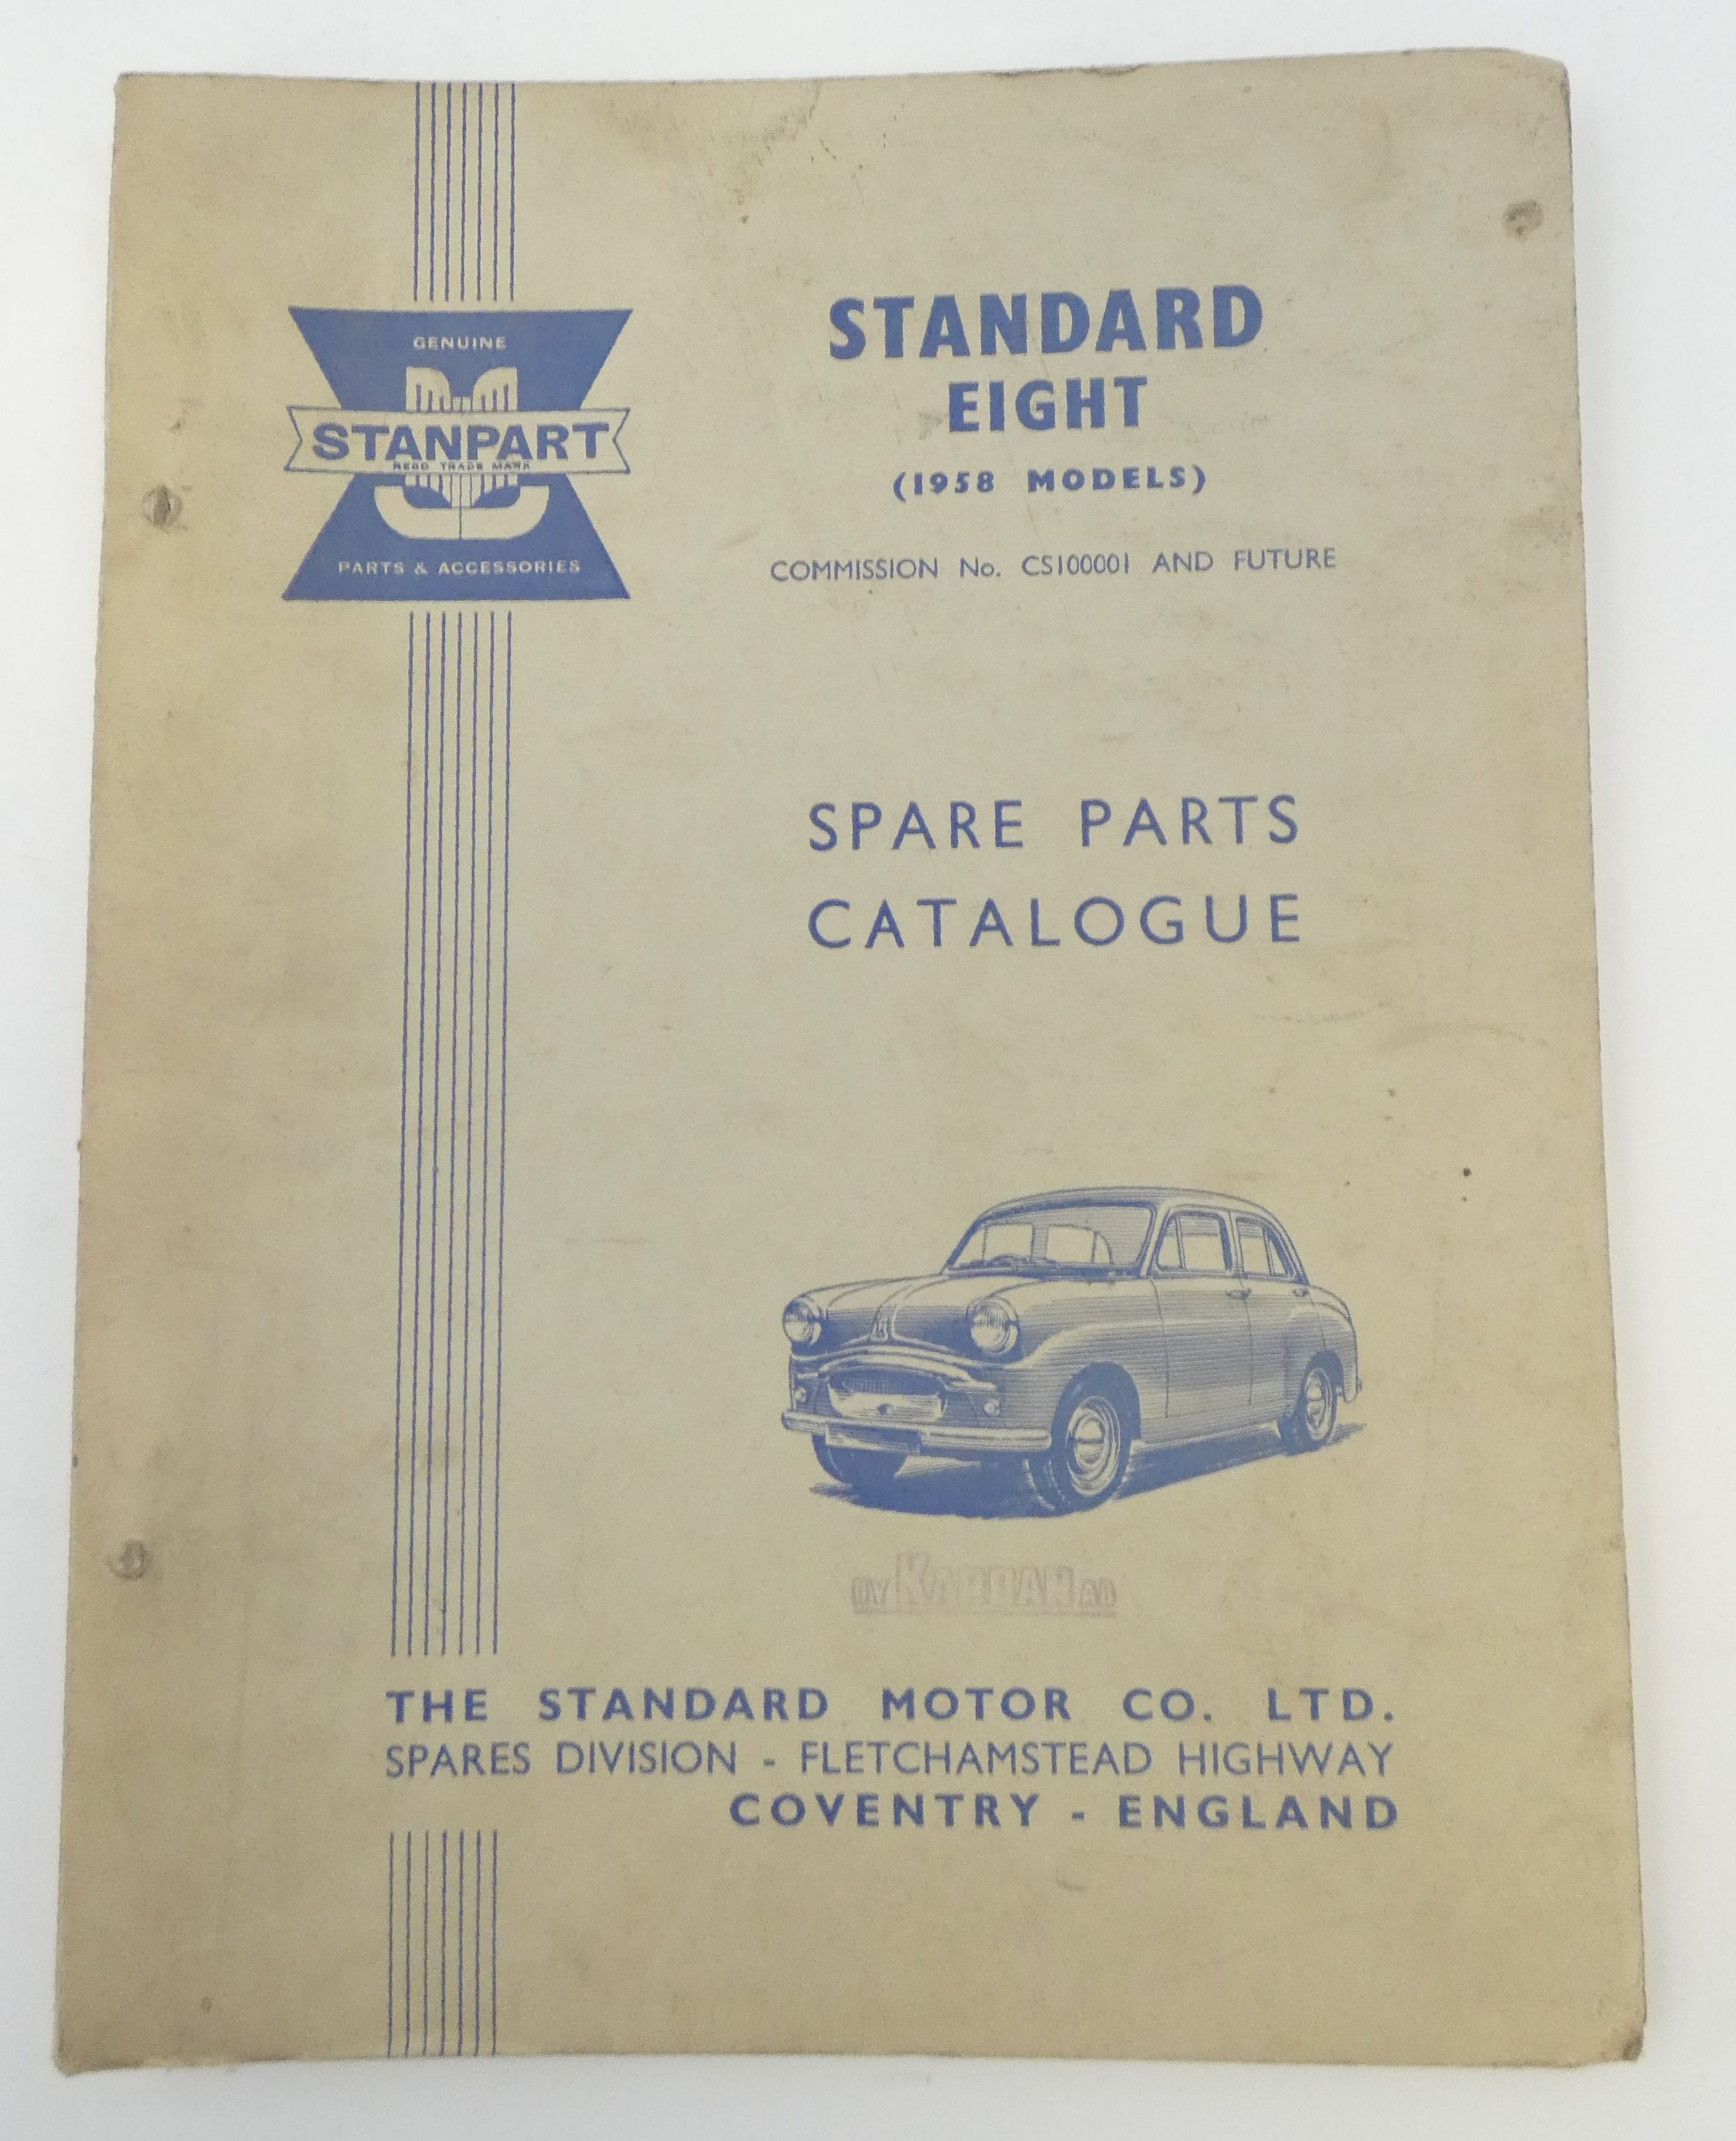 Standard Eight (1958 models) spare parts catalogue